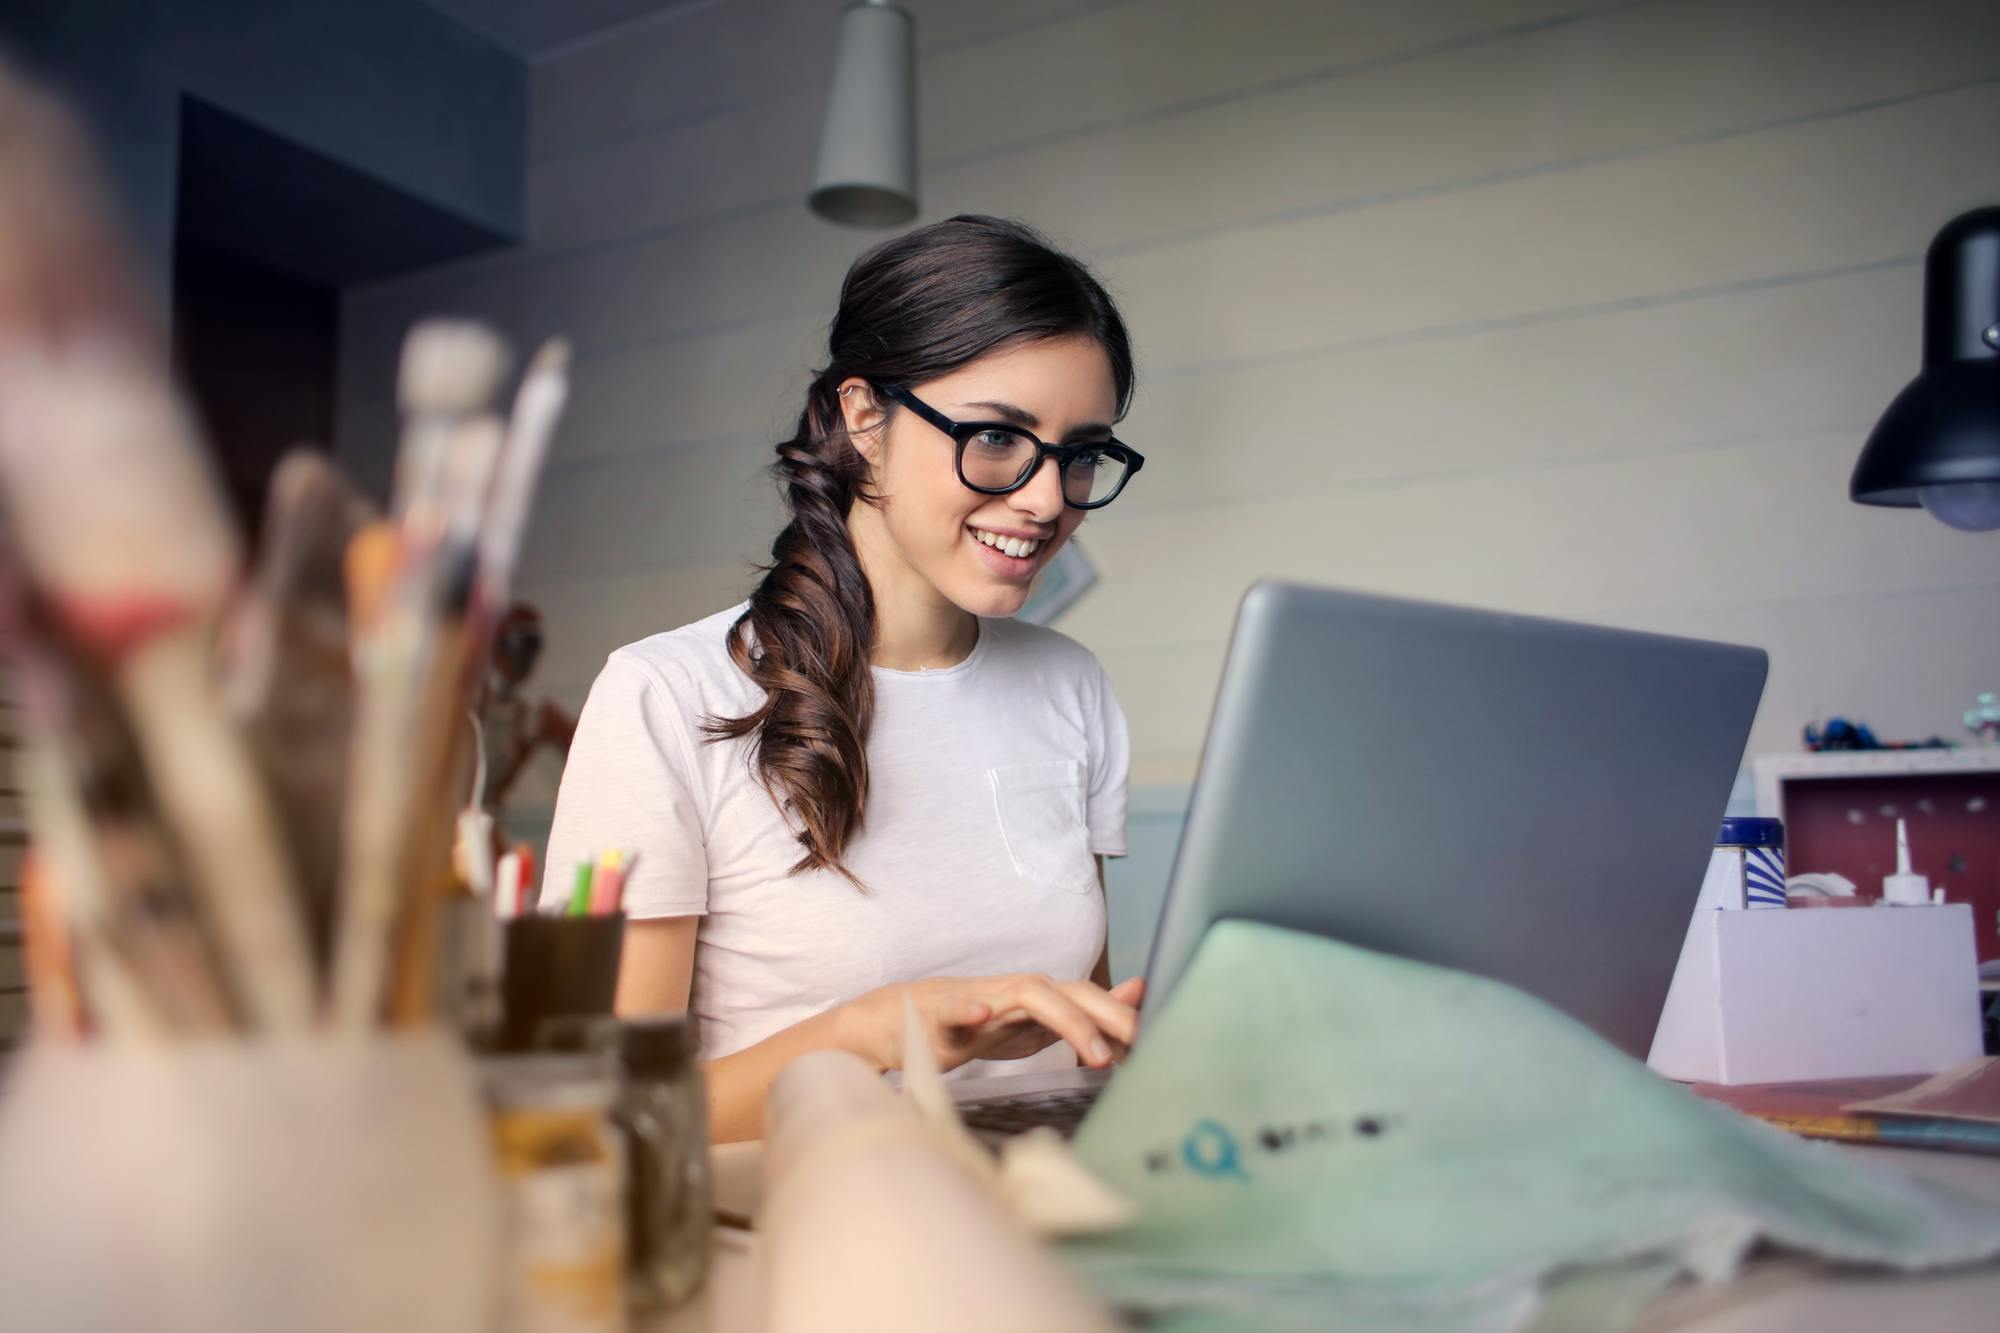 a girl wearing glasses smiles as she works on a computer